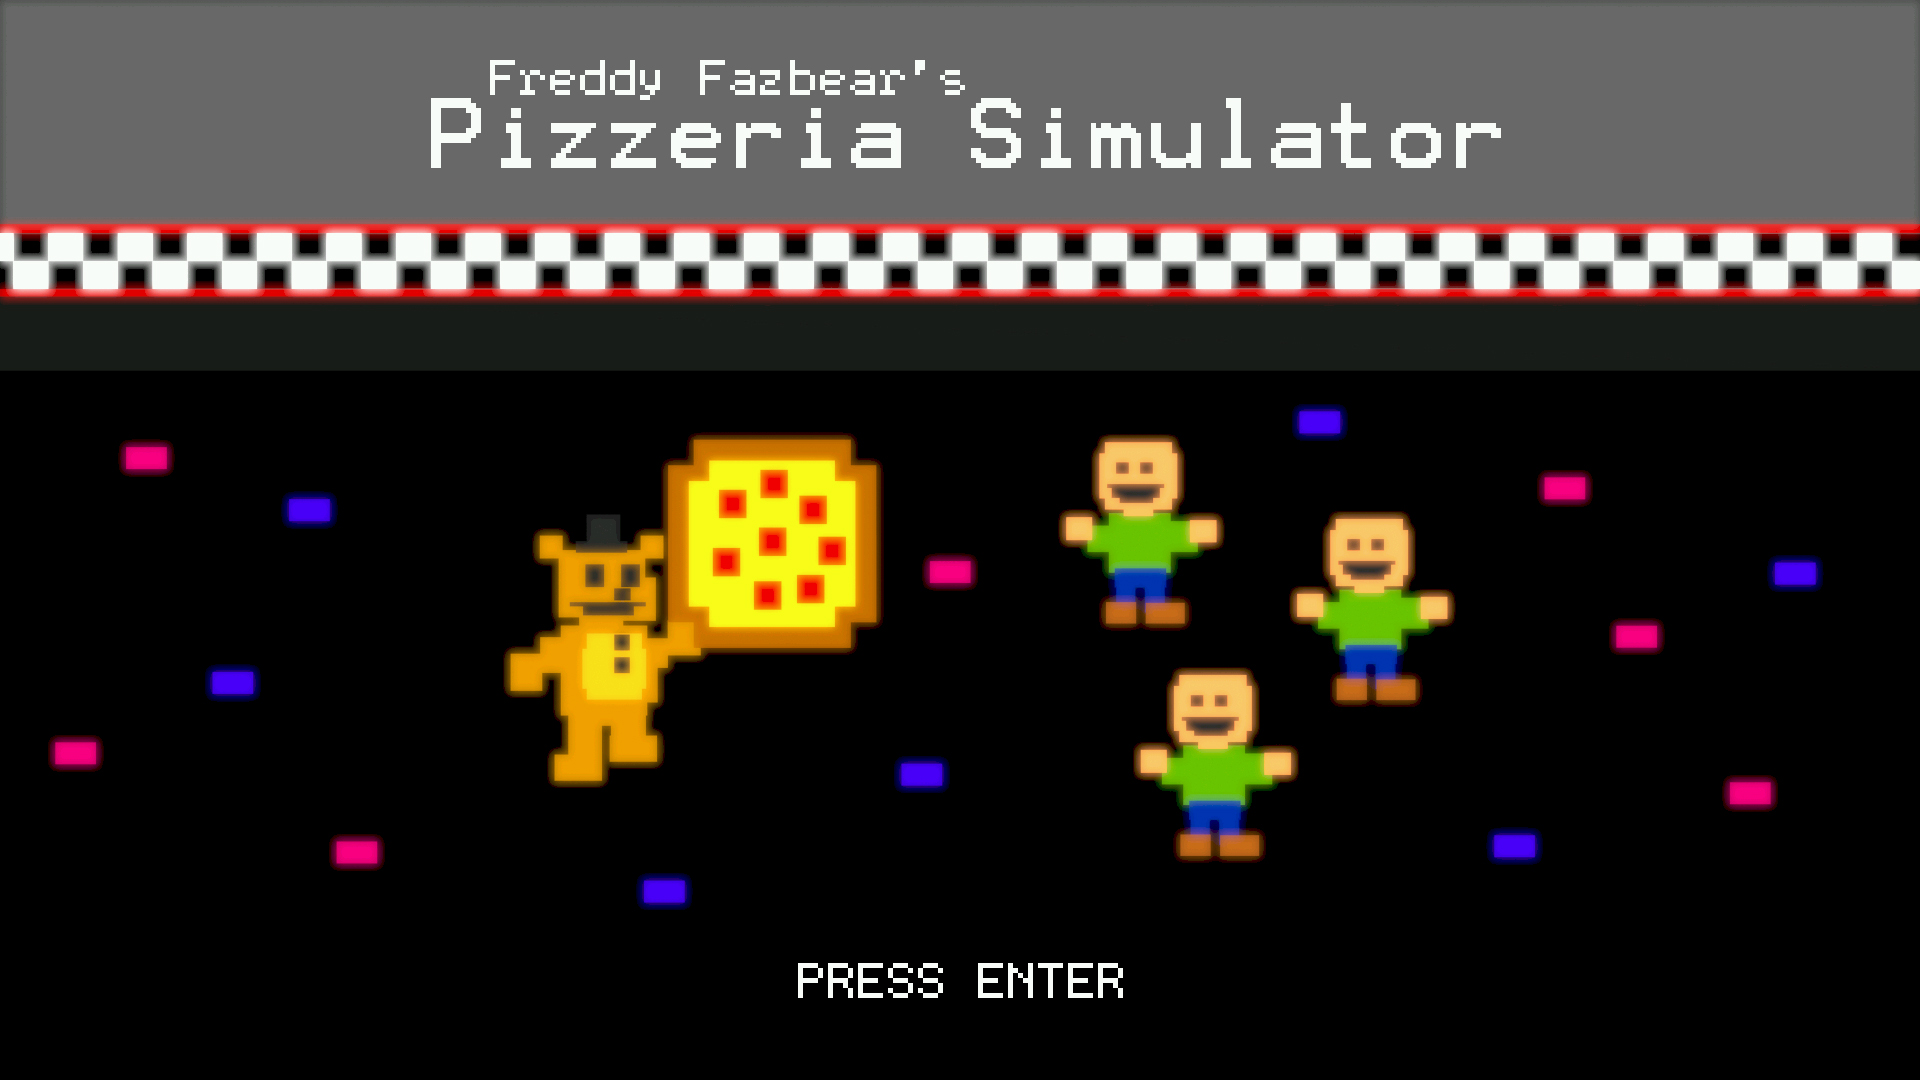 Freddy Fazbear's Pizzeria Simulator on Steam